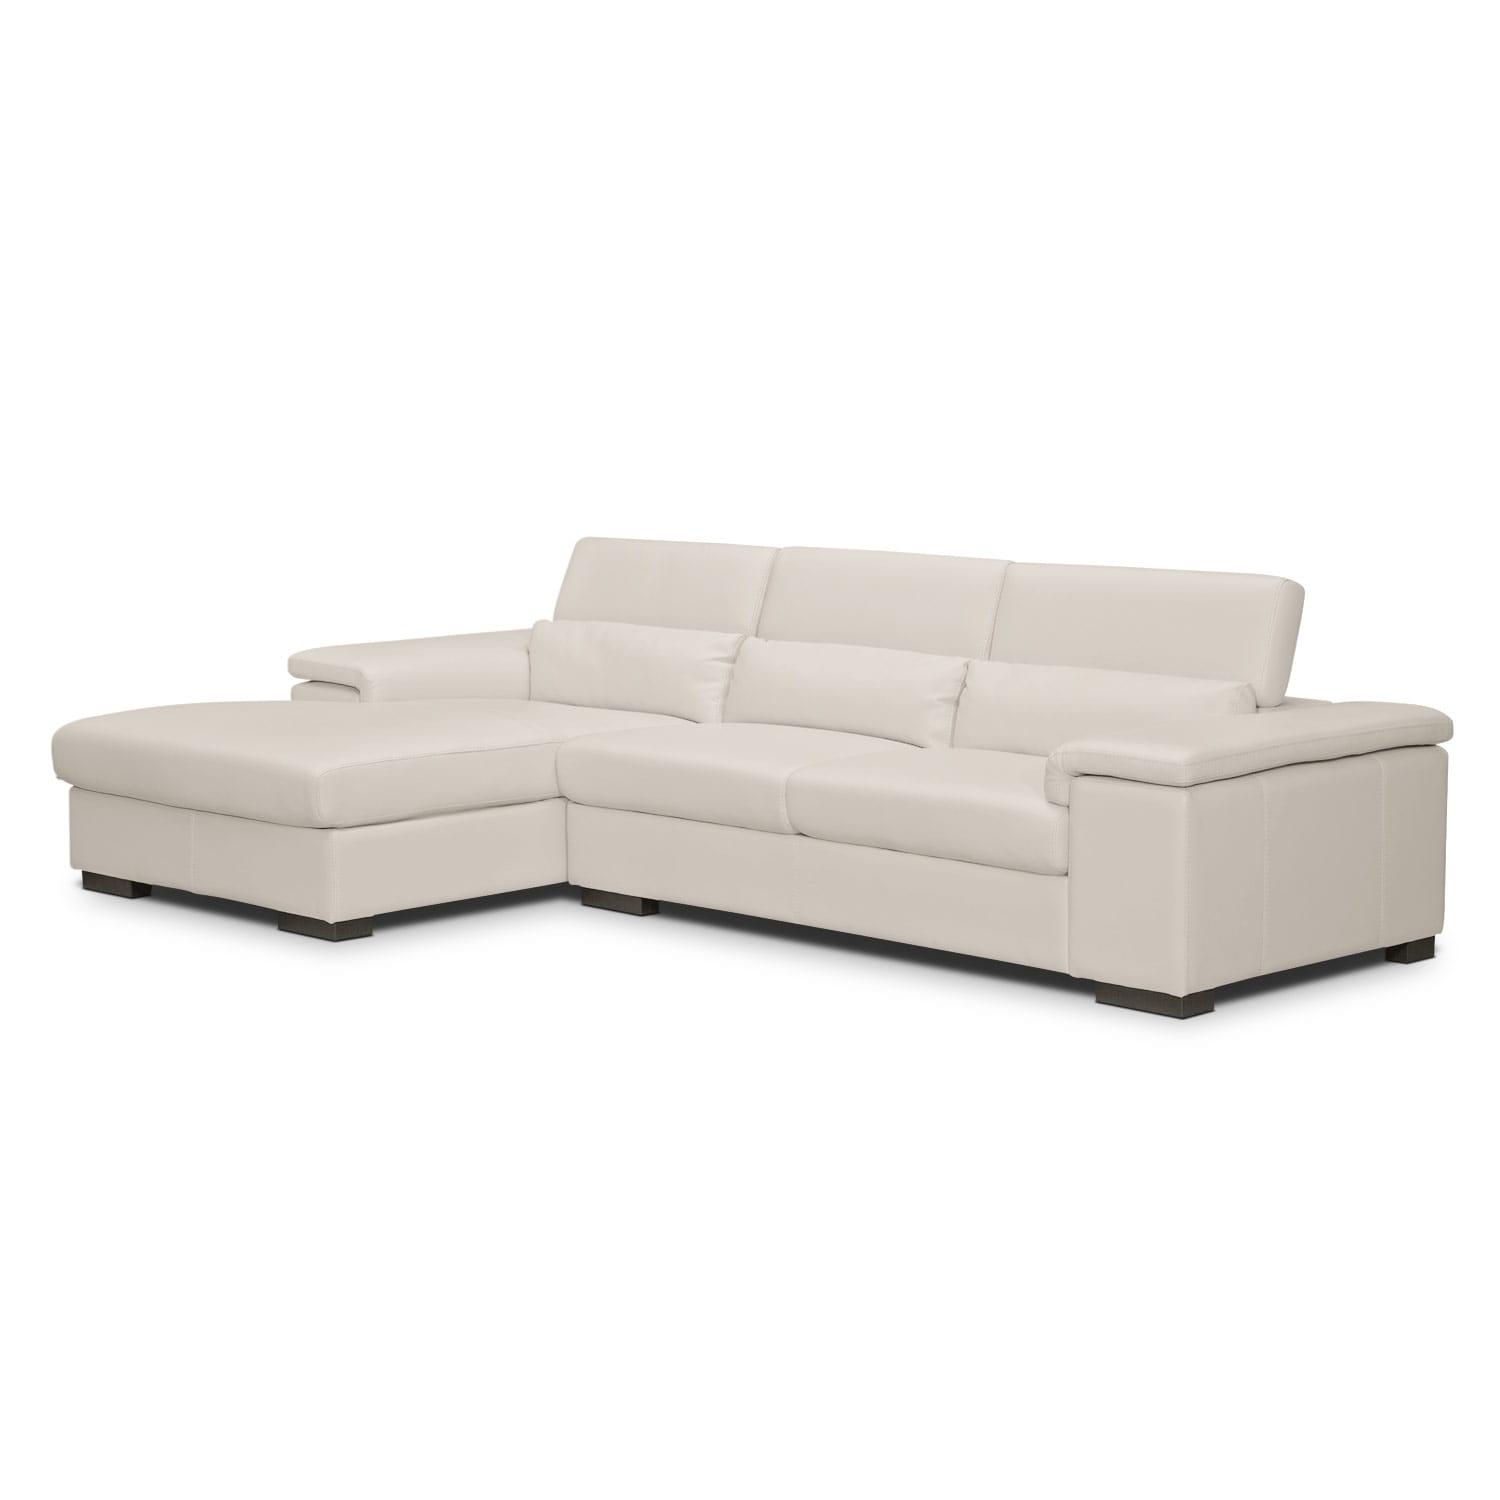 Living Room Furniture - Ventana 2-Piece Left-Facing Sectional - Mist